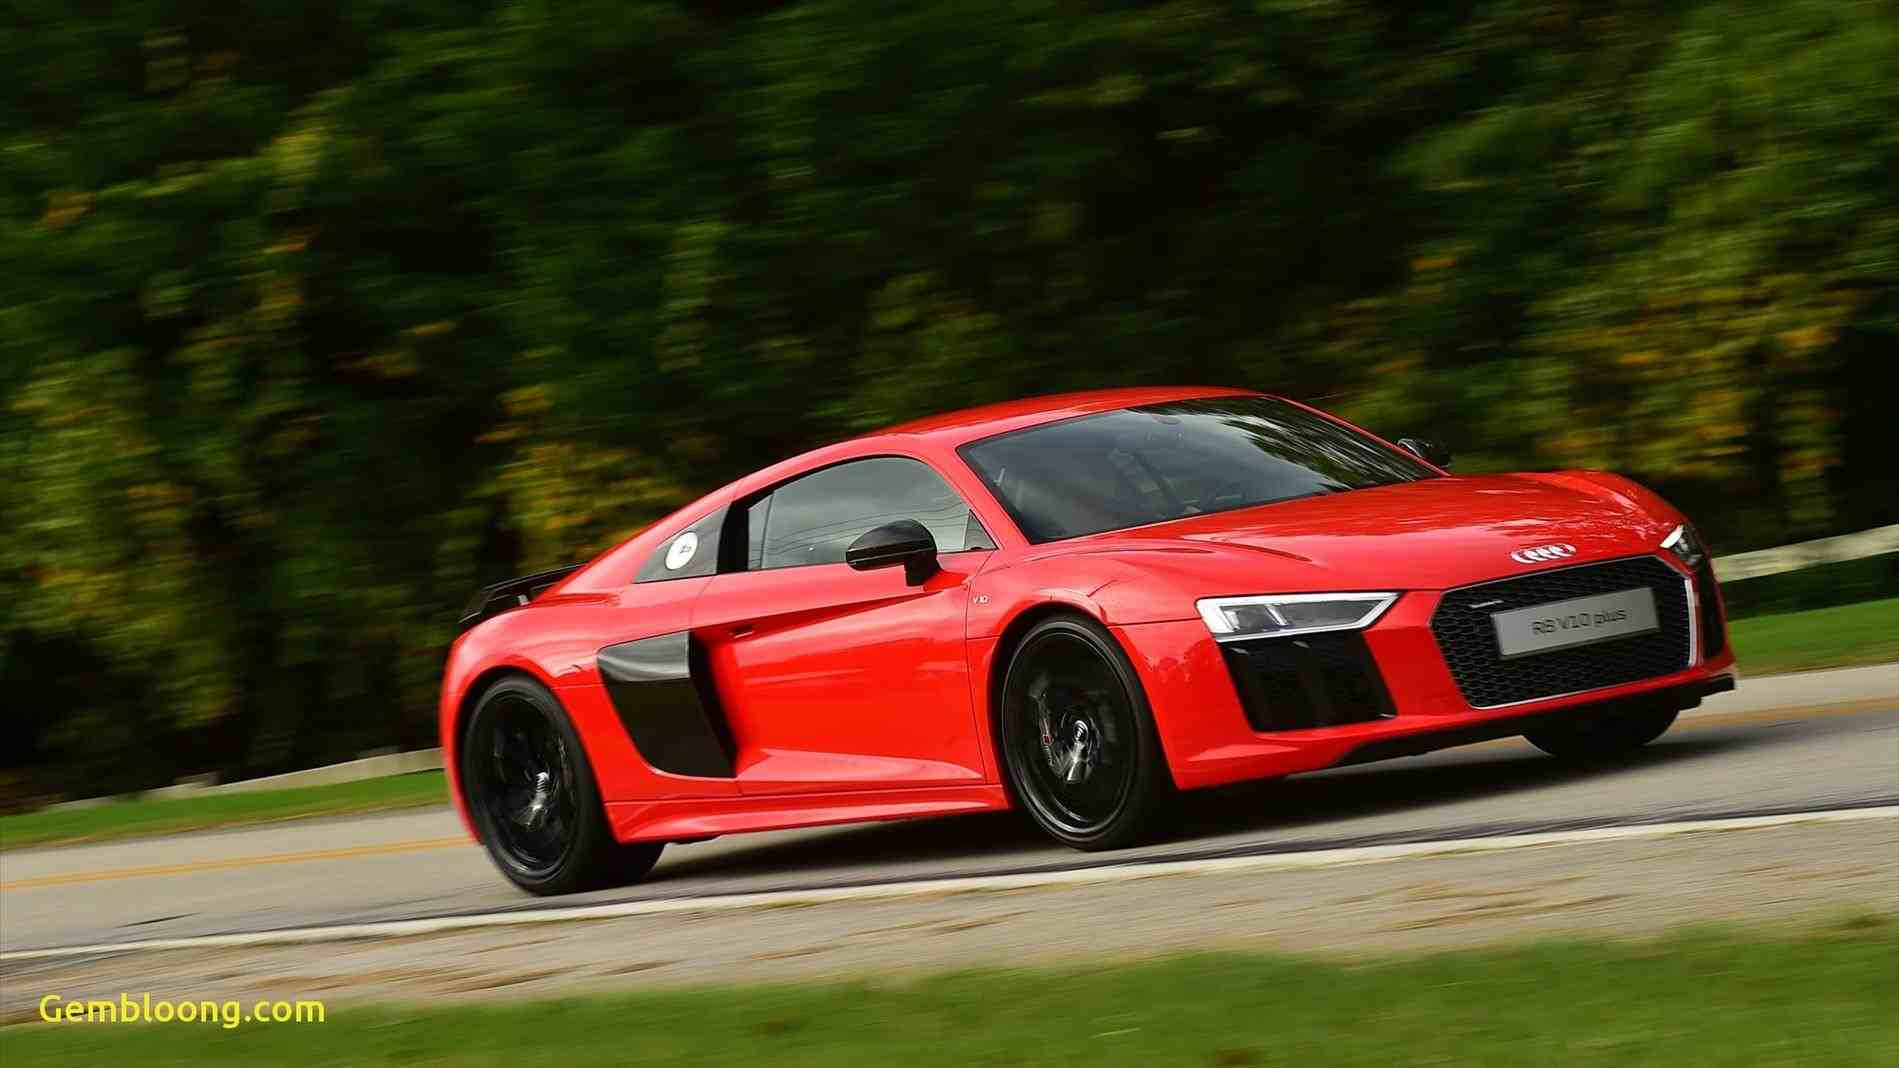 Car for Sale Under 5000 New Sport Cars for Sale Under 5000 ✓ the Audi Car